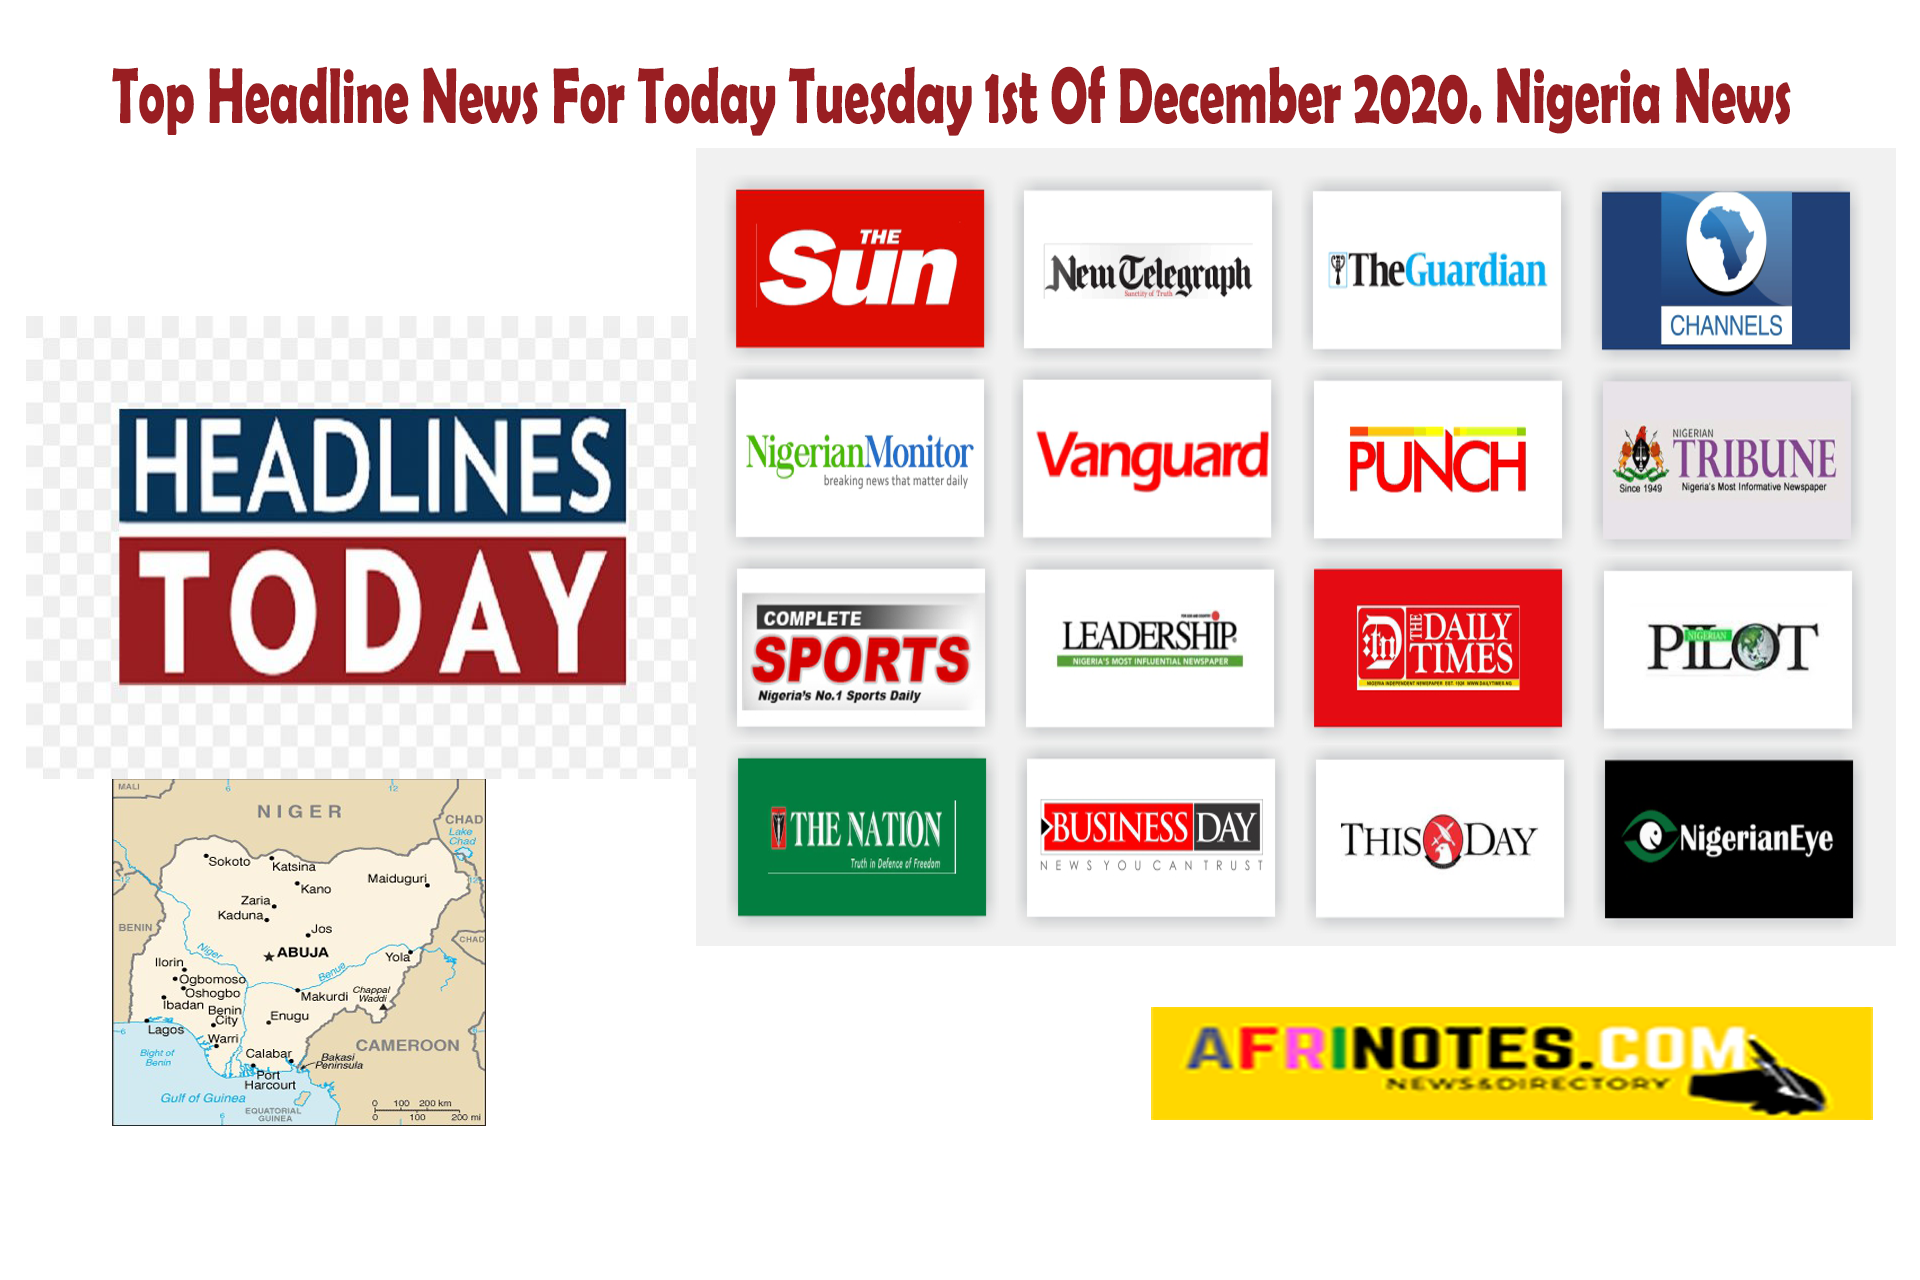 Headline-News-For-Today-Tuesday-1st-Of-December-2020